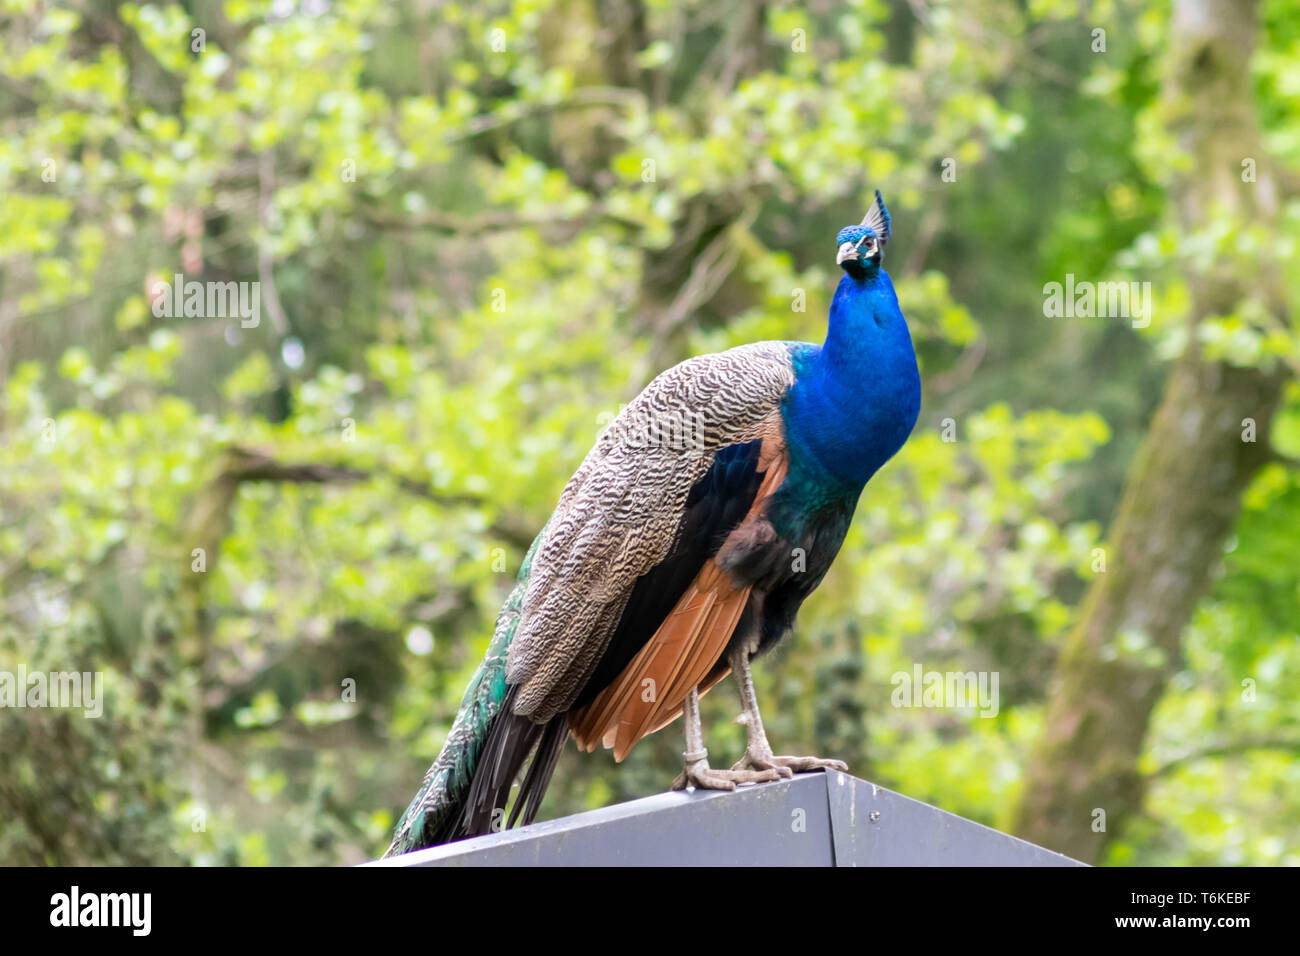 Beautiful blue peacock sitting on a roof looking for a partner to impress - Stock Image